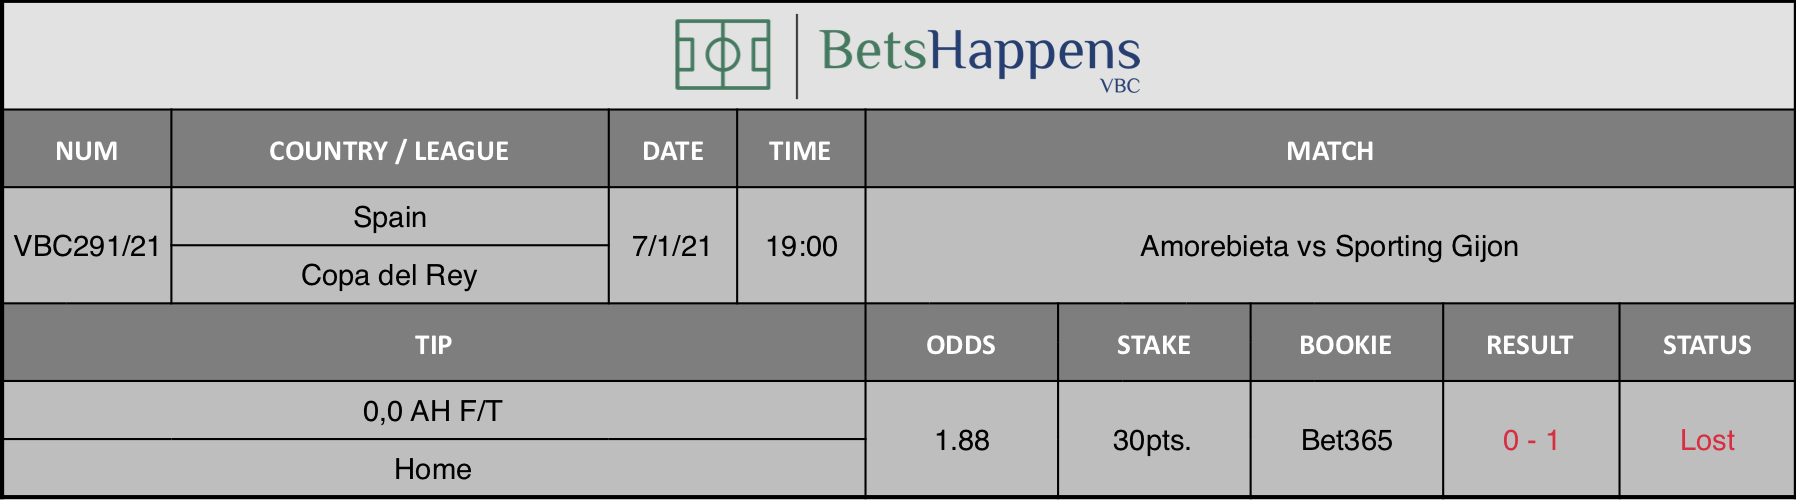 Results of our tip for the Amorebieta vs Sporting Gijon  match where 0,0 AH F/T  Home is recommended